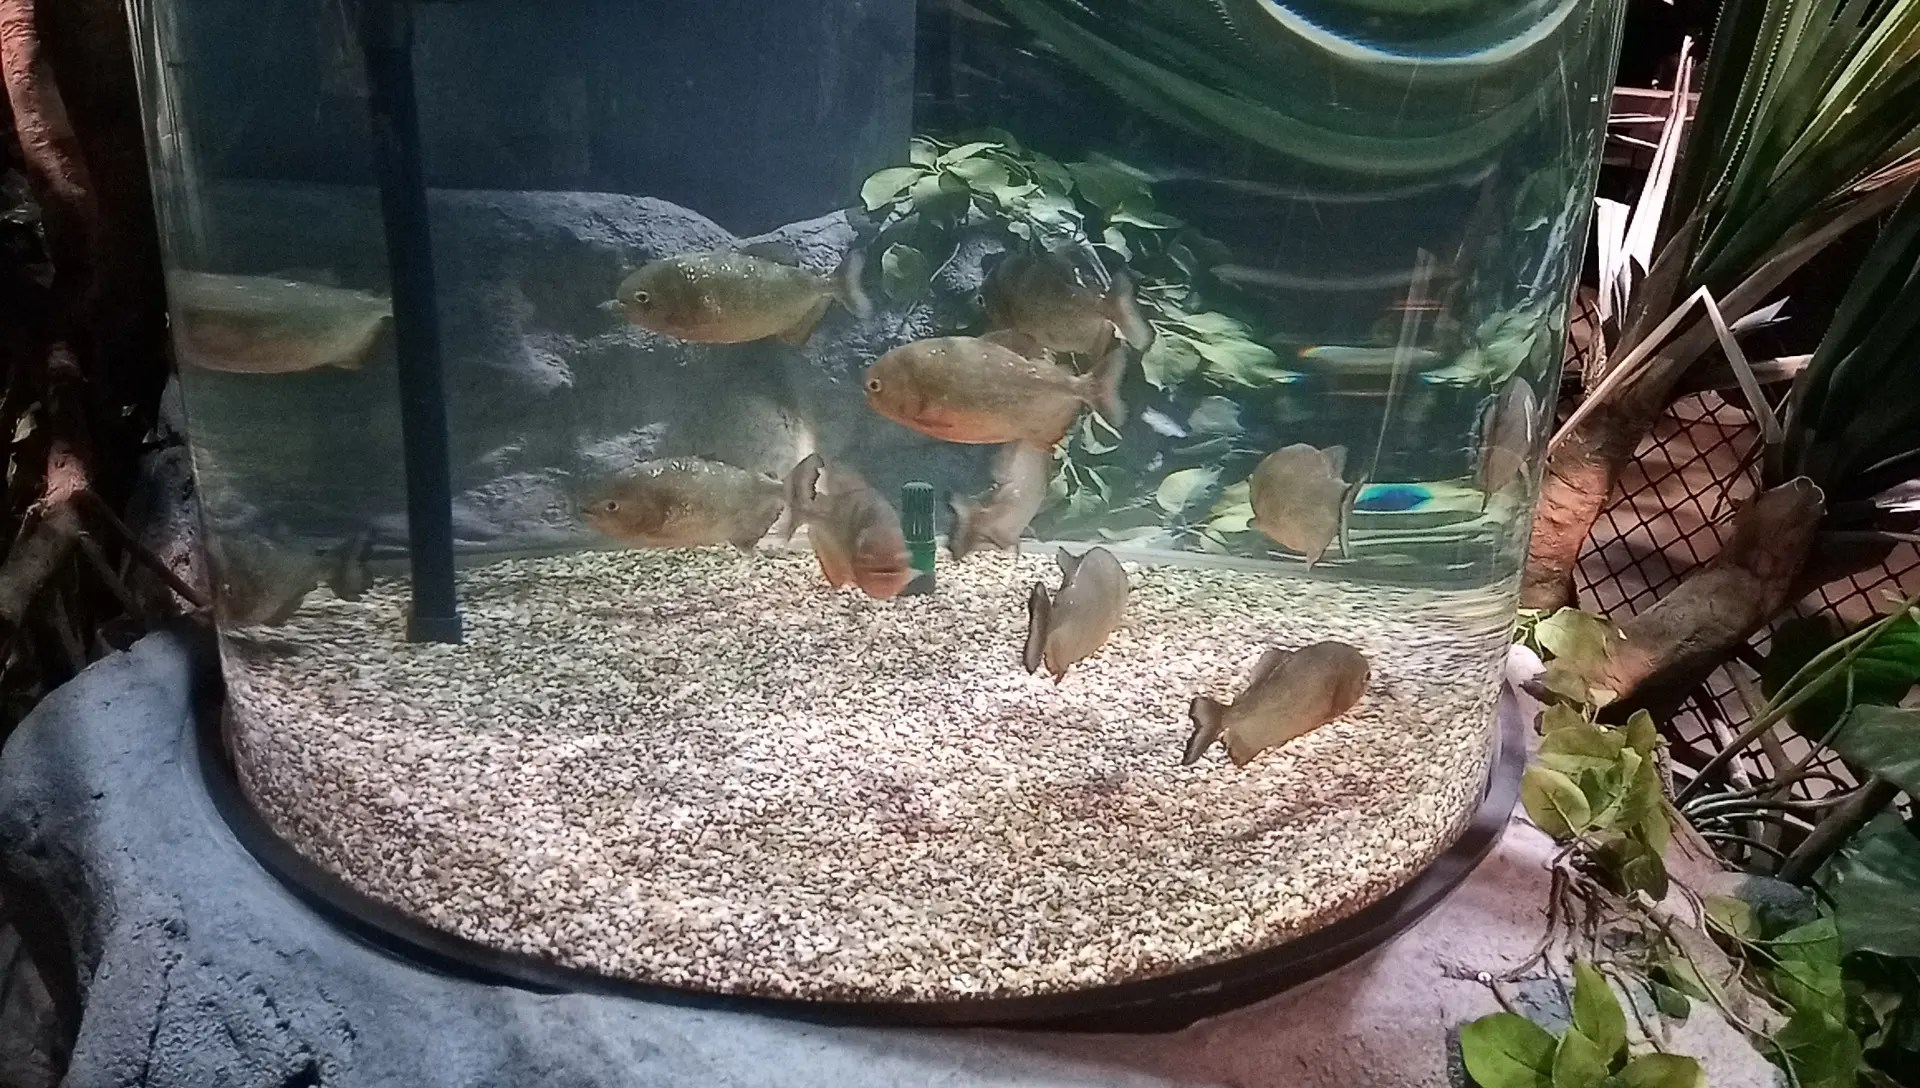 piranhas tank in the DMM Kariyushi Aquarium